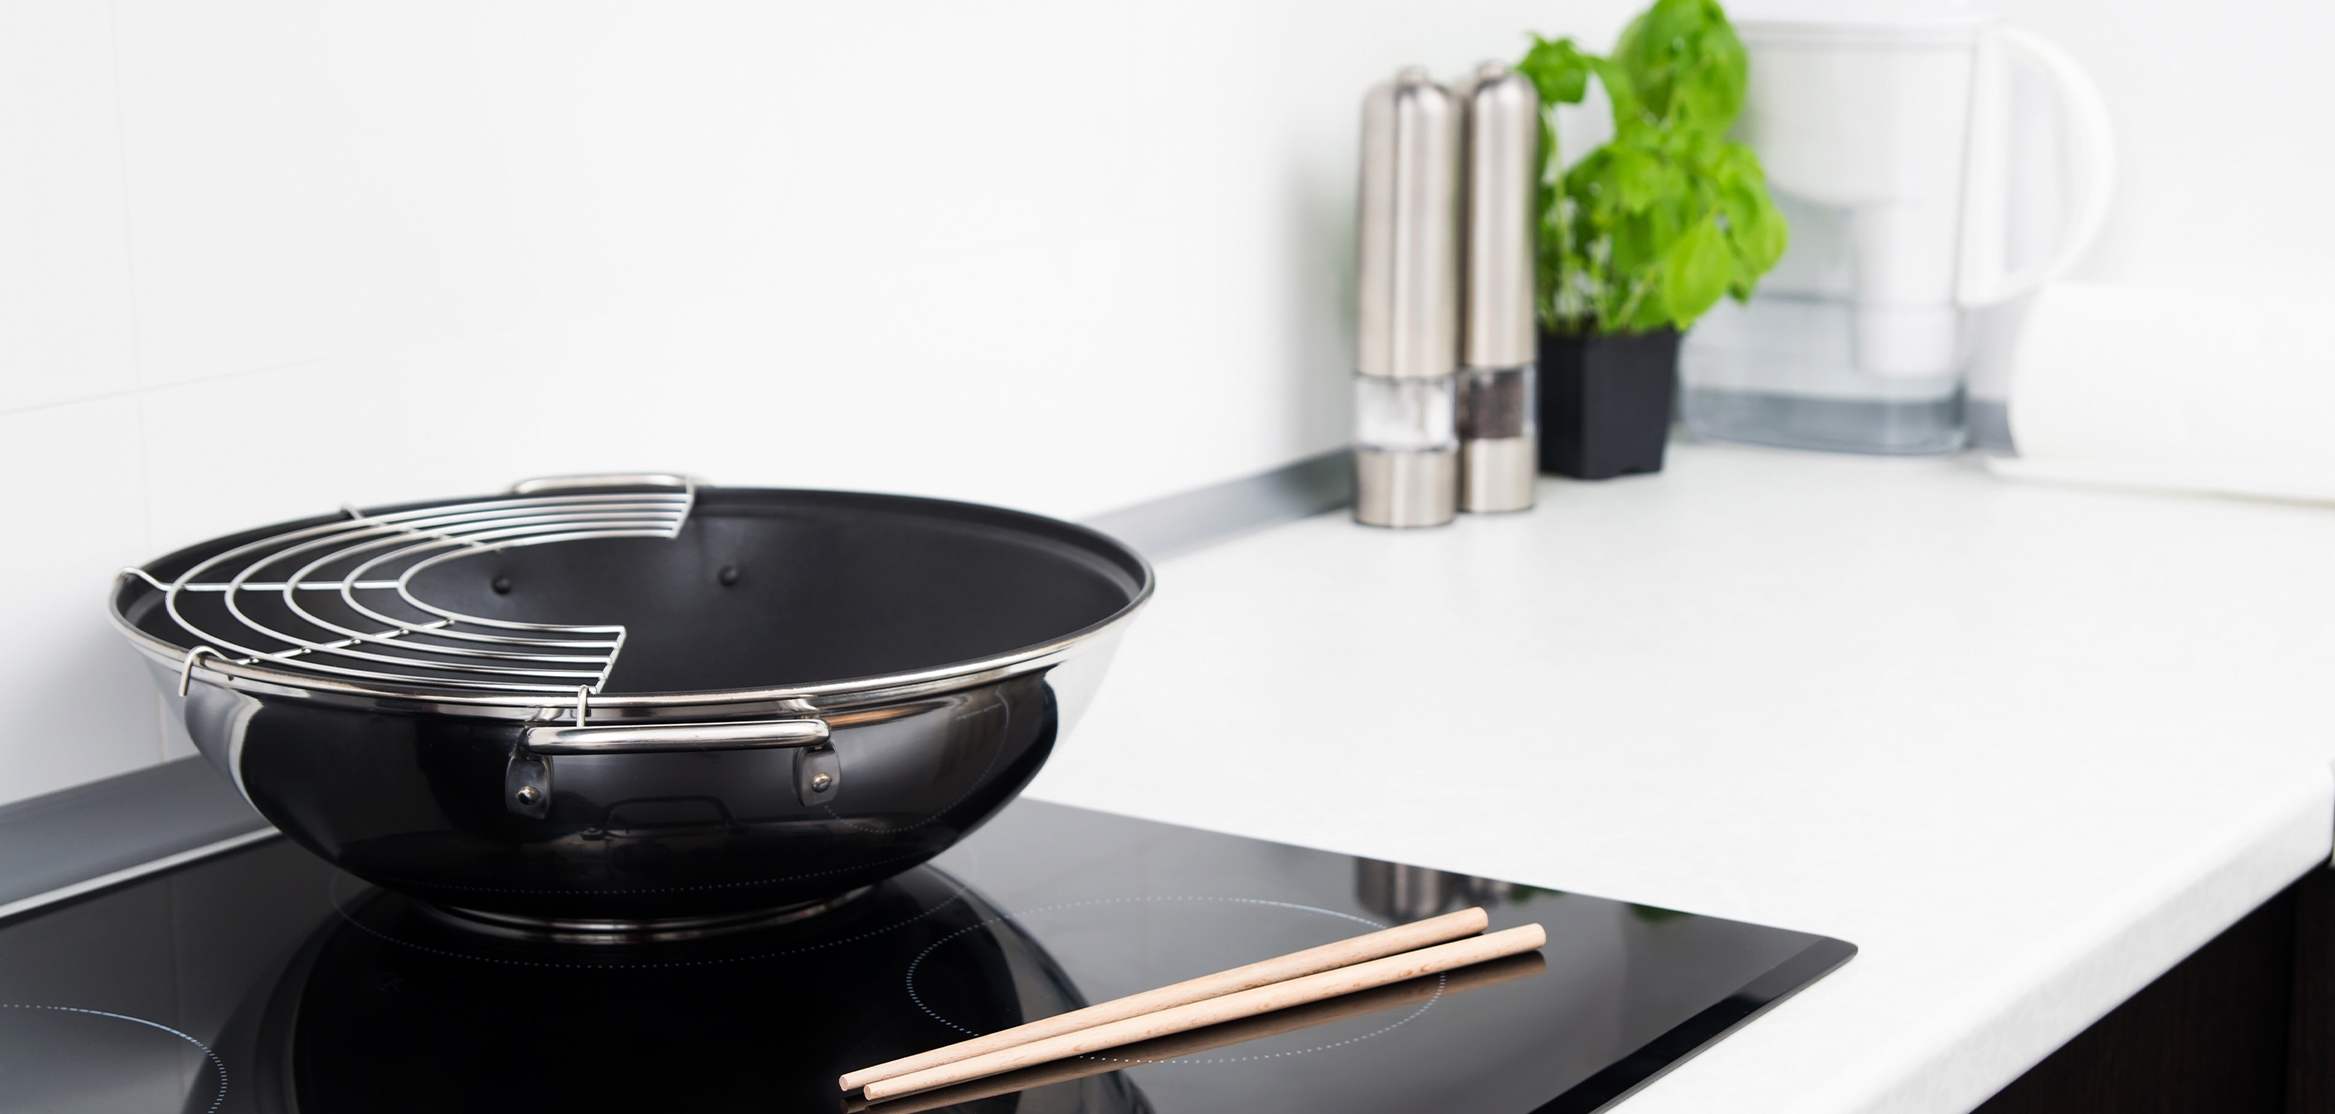 Why Use an Induction Cooktop?